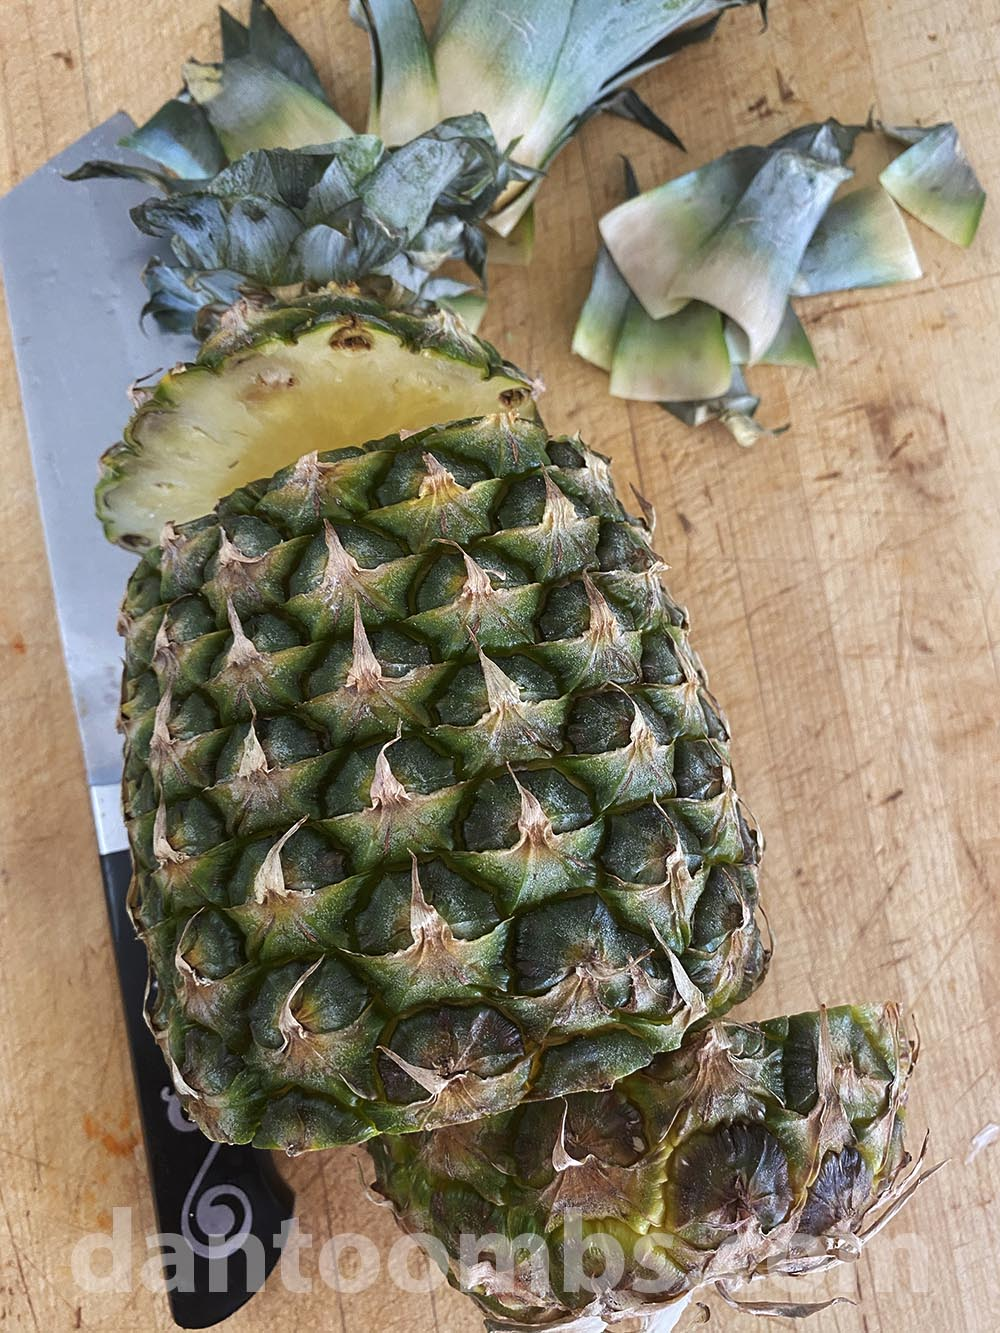 Cutting the center out of a pineapple